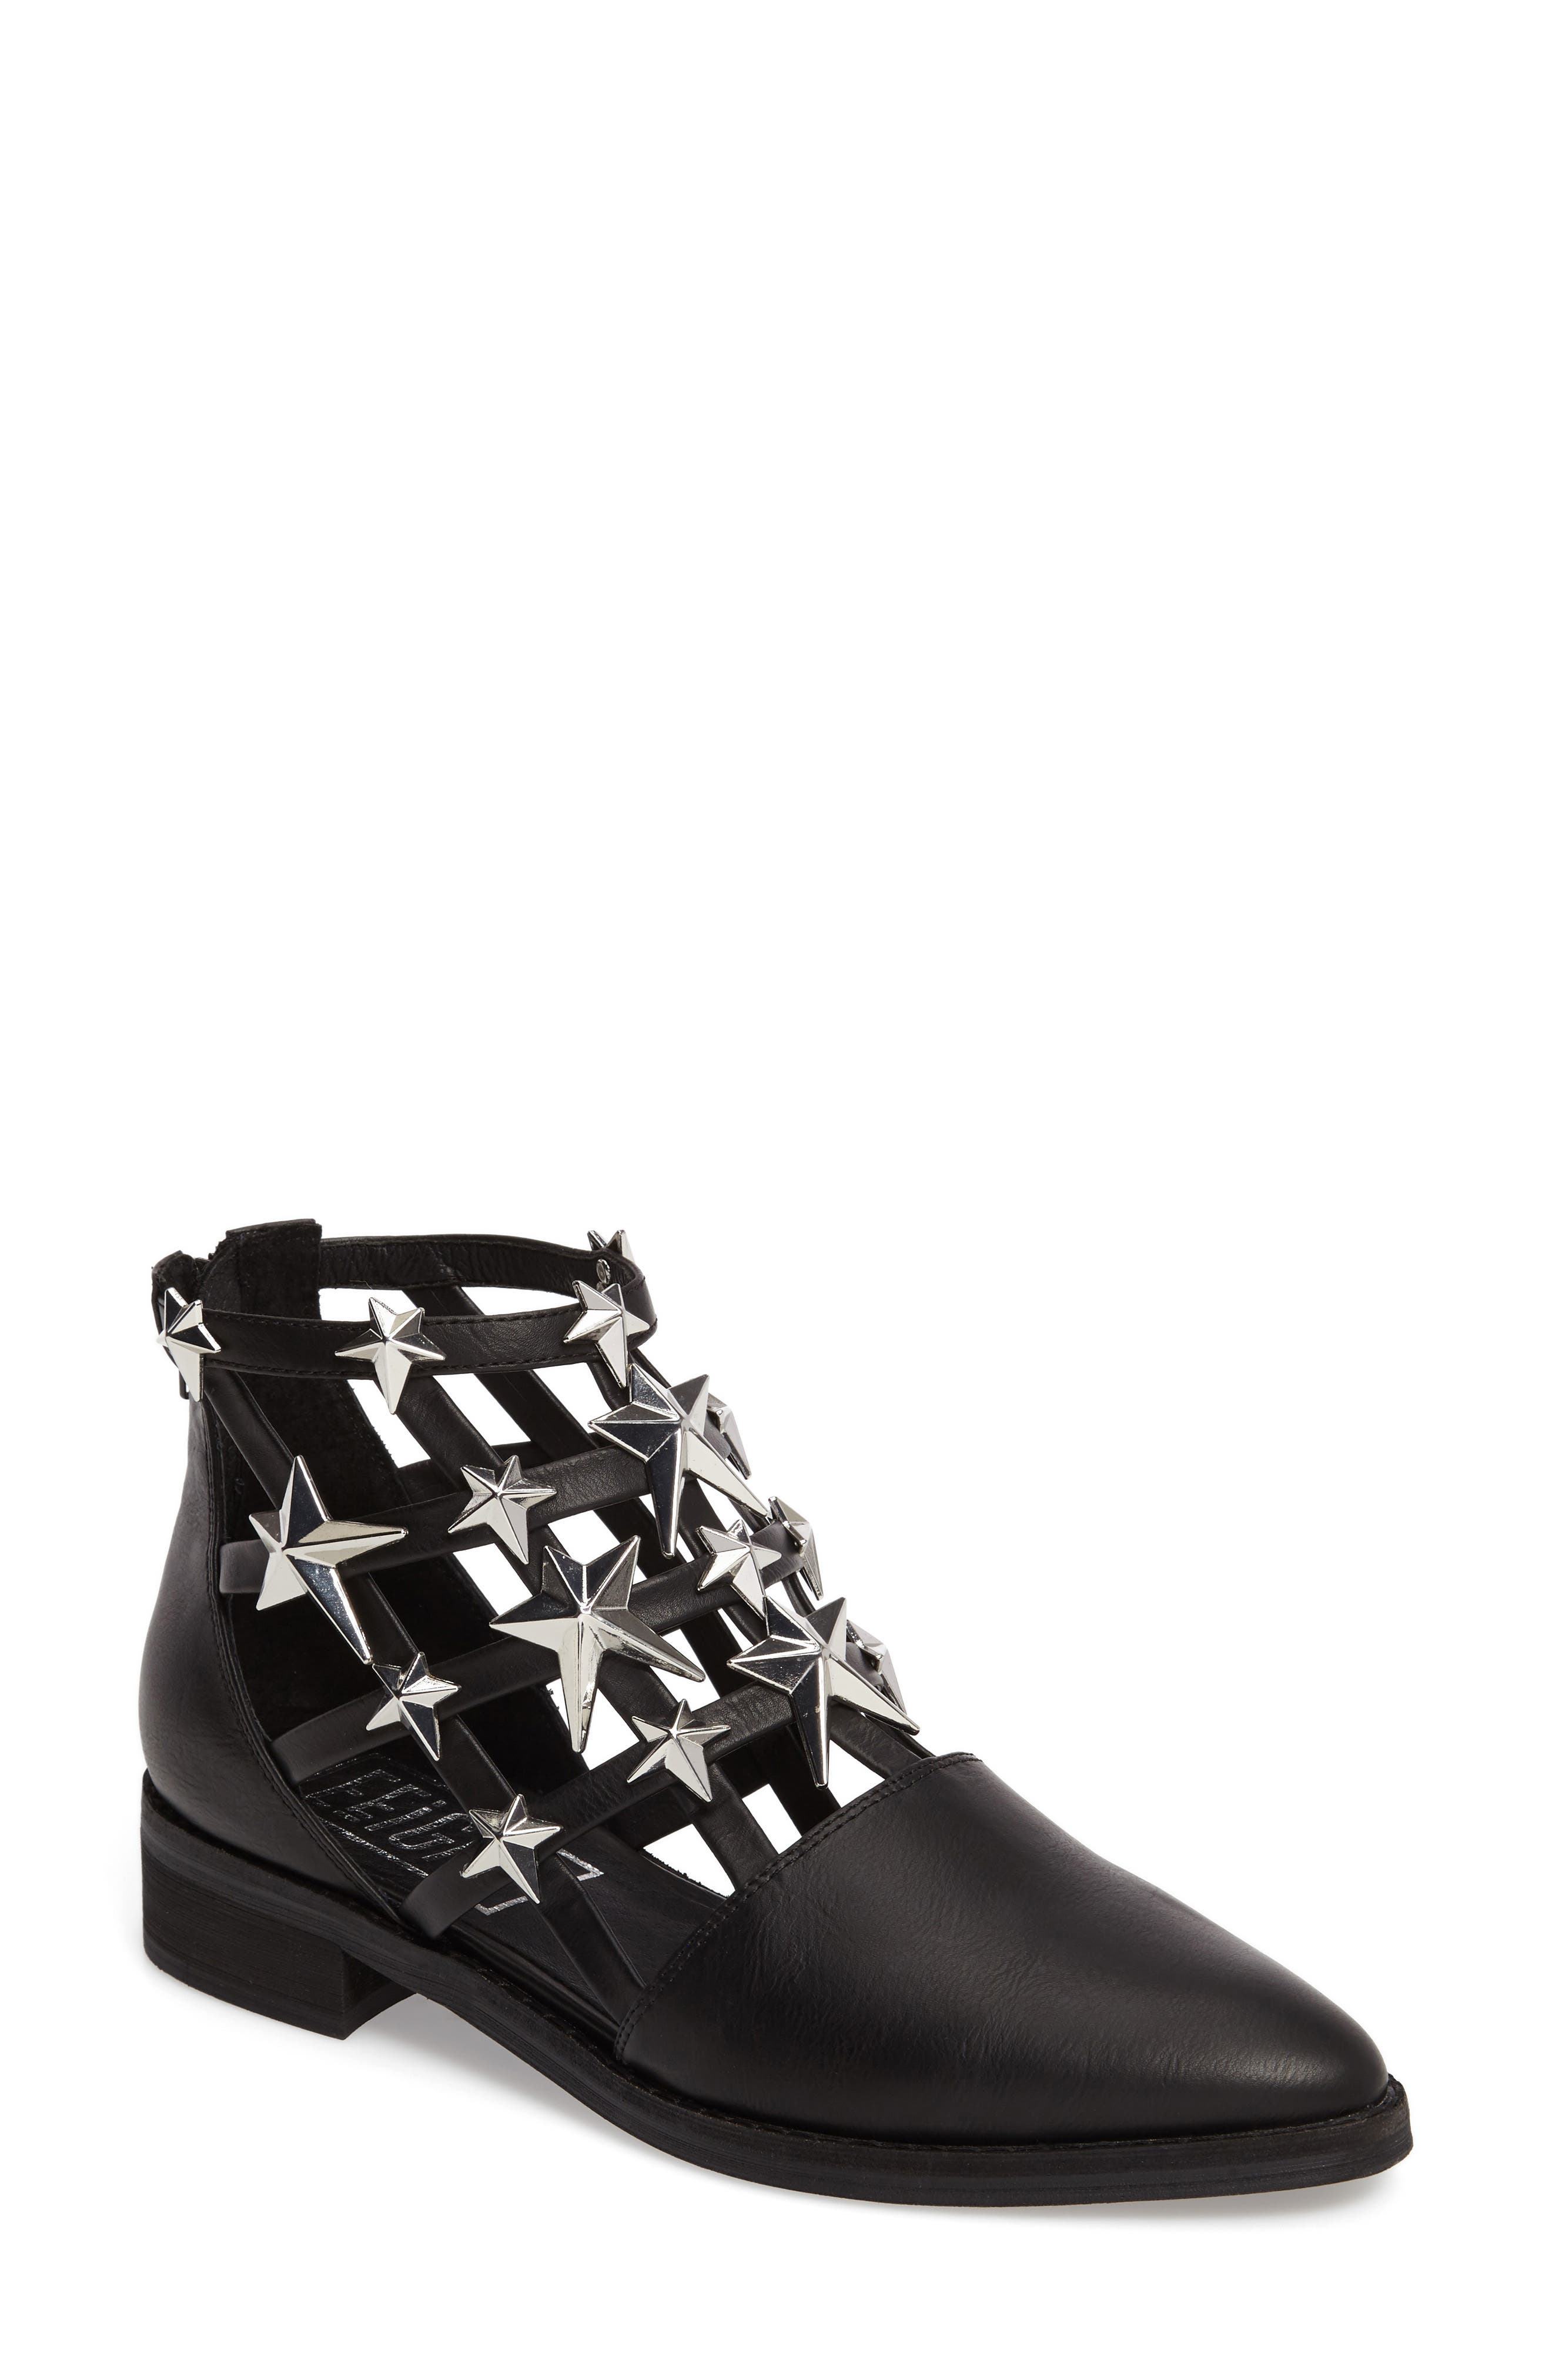 Alternate Image 1 Selected - E8 by Miista Nelly Cutout Bootie (Women)